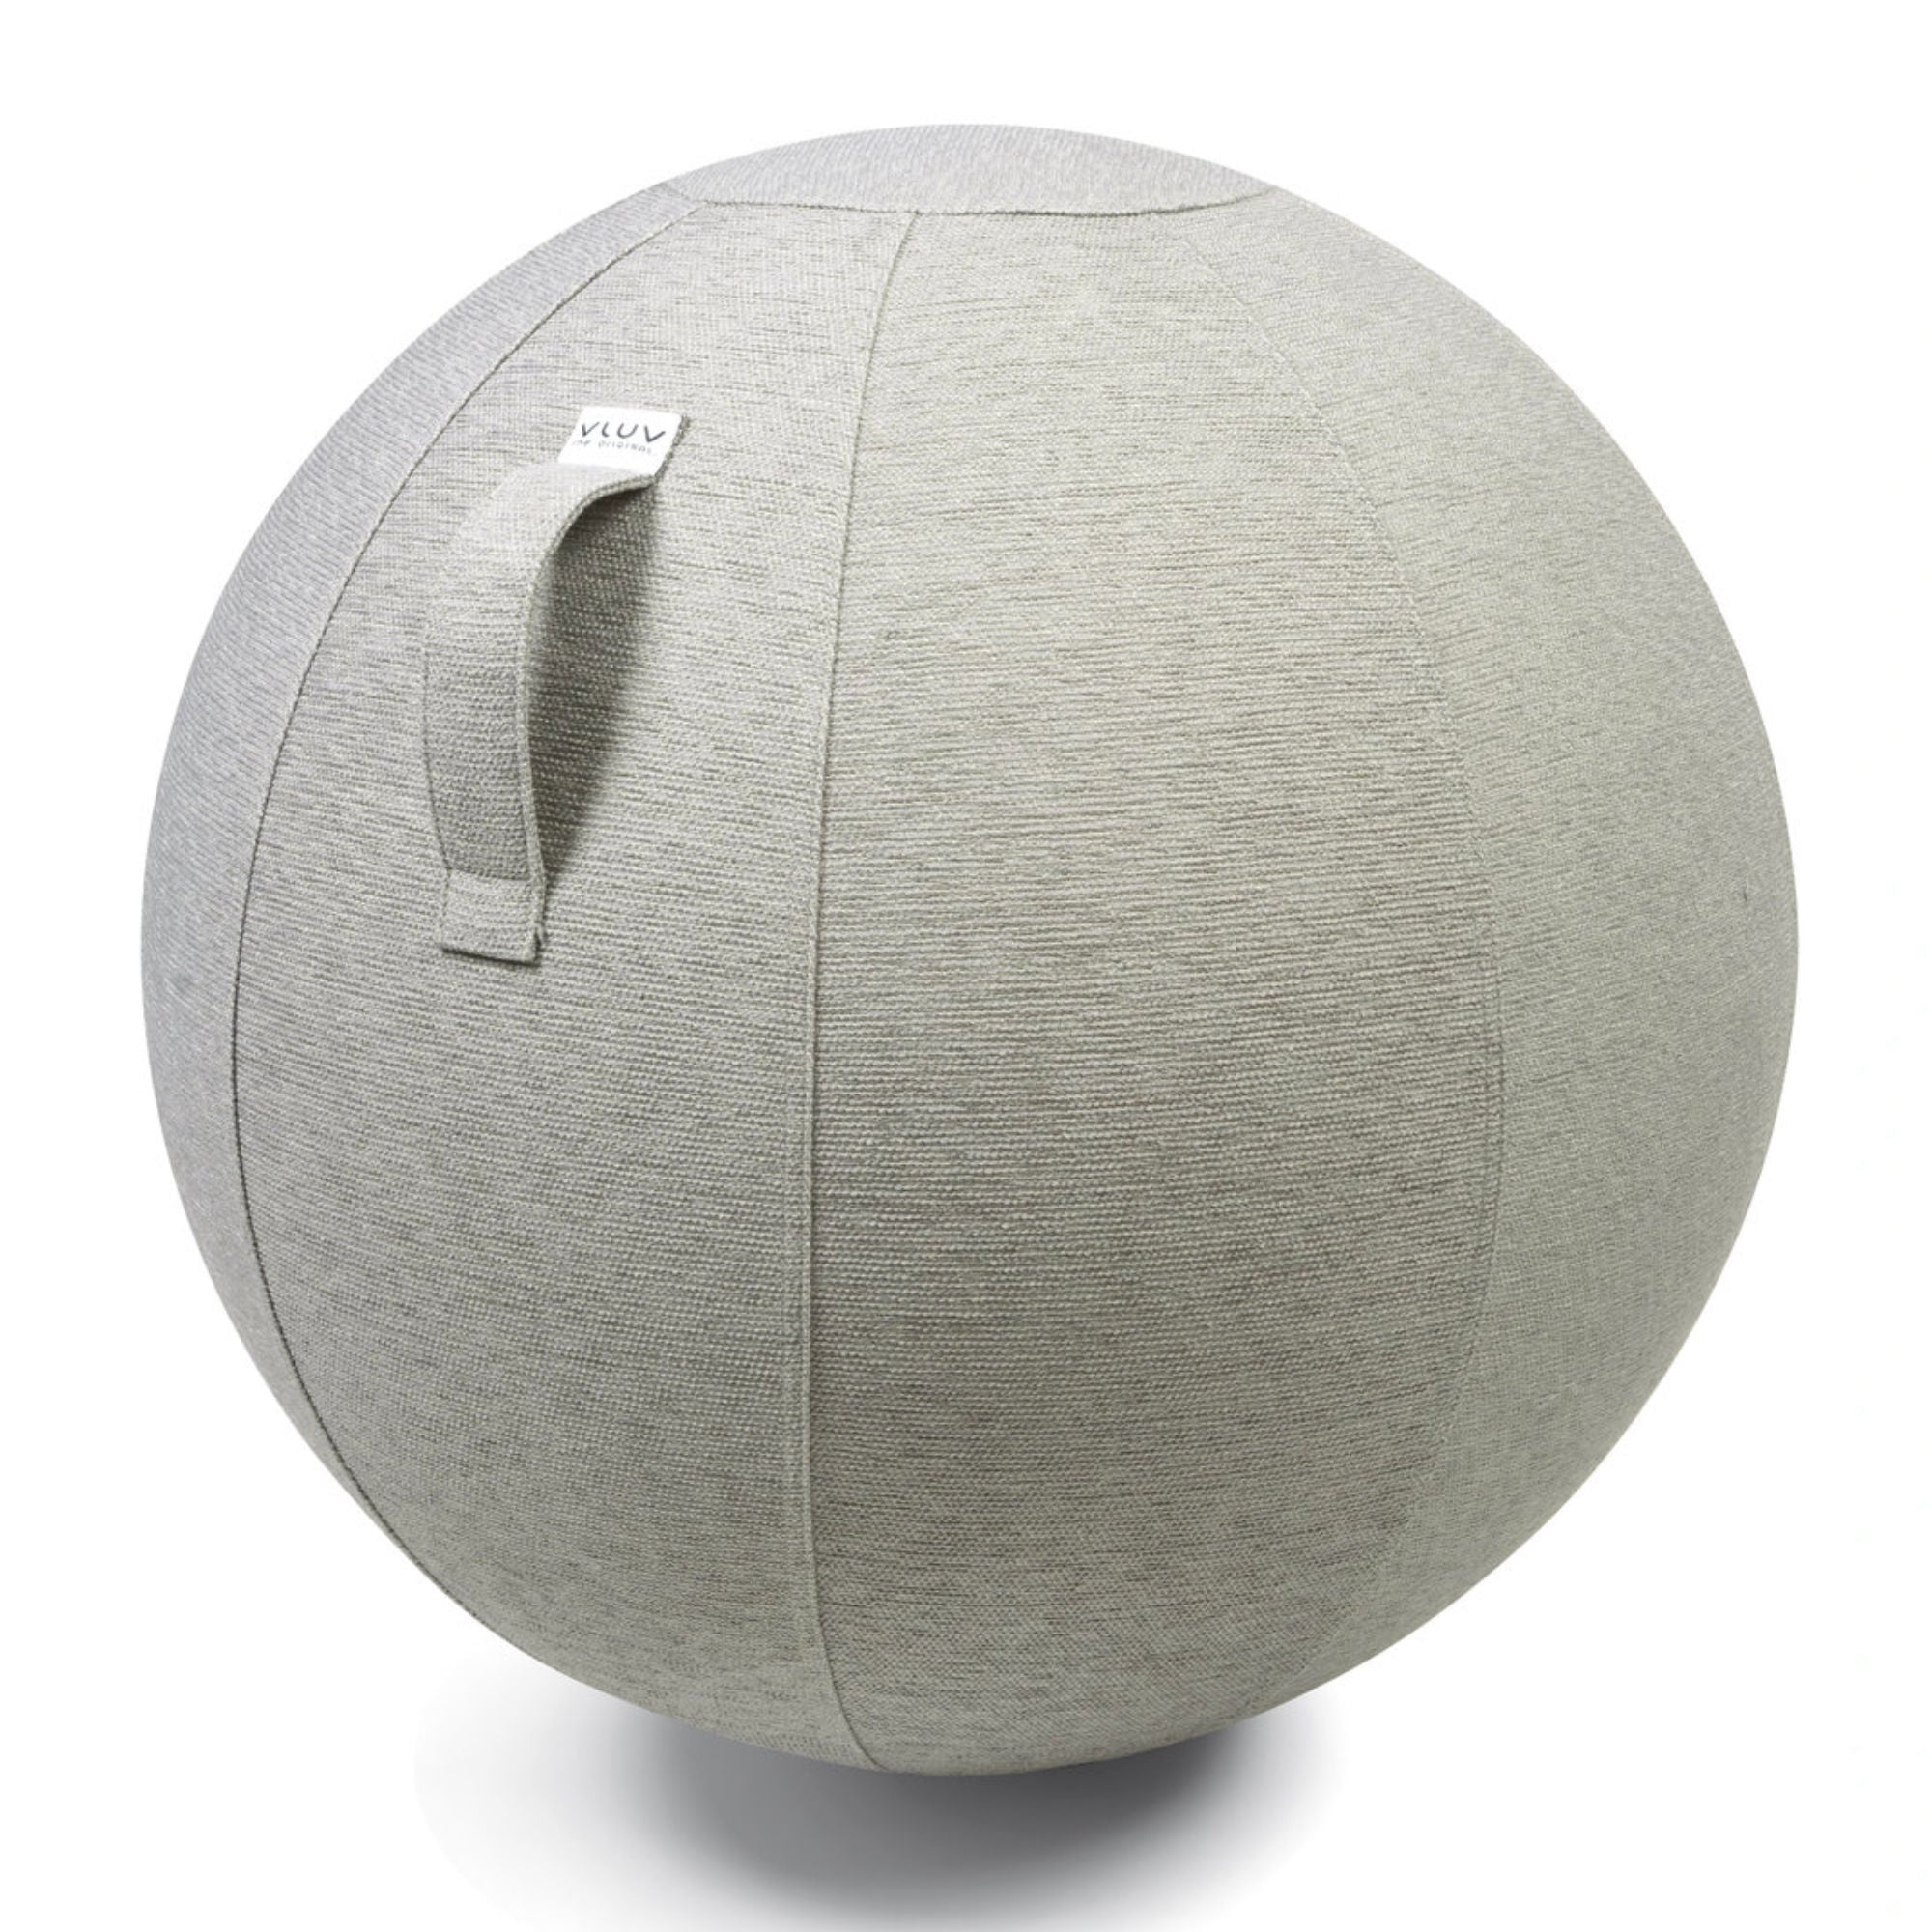 VLUV STOV active sitting & yoga ball Ø55cm, concrete